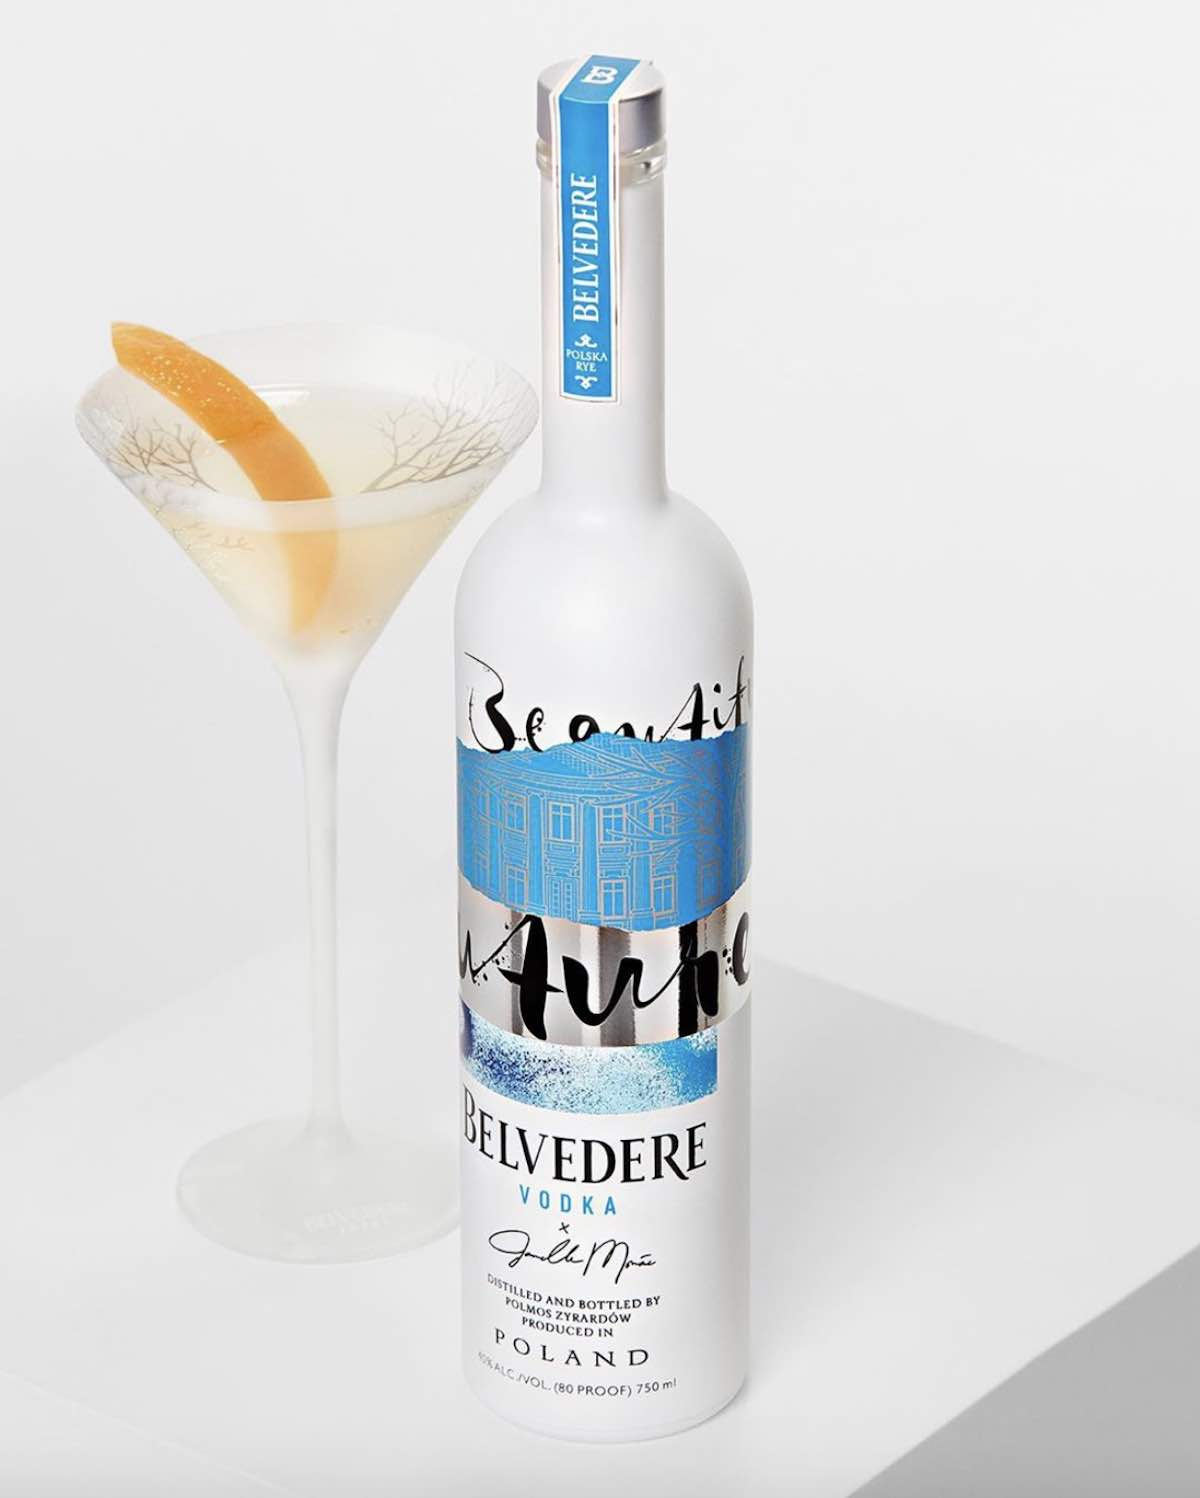 Belvedere vodka A BEAUTIFUL FUTURE, Janelle Monae's limited edition - Photo via IG by @belvederevodka.